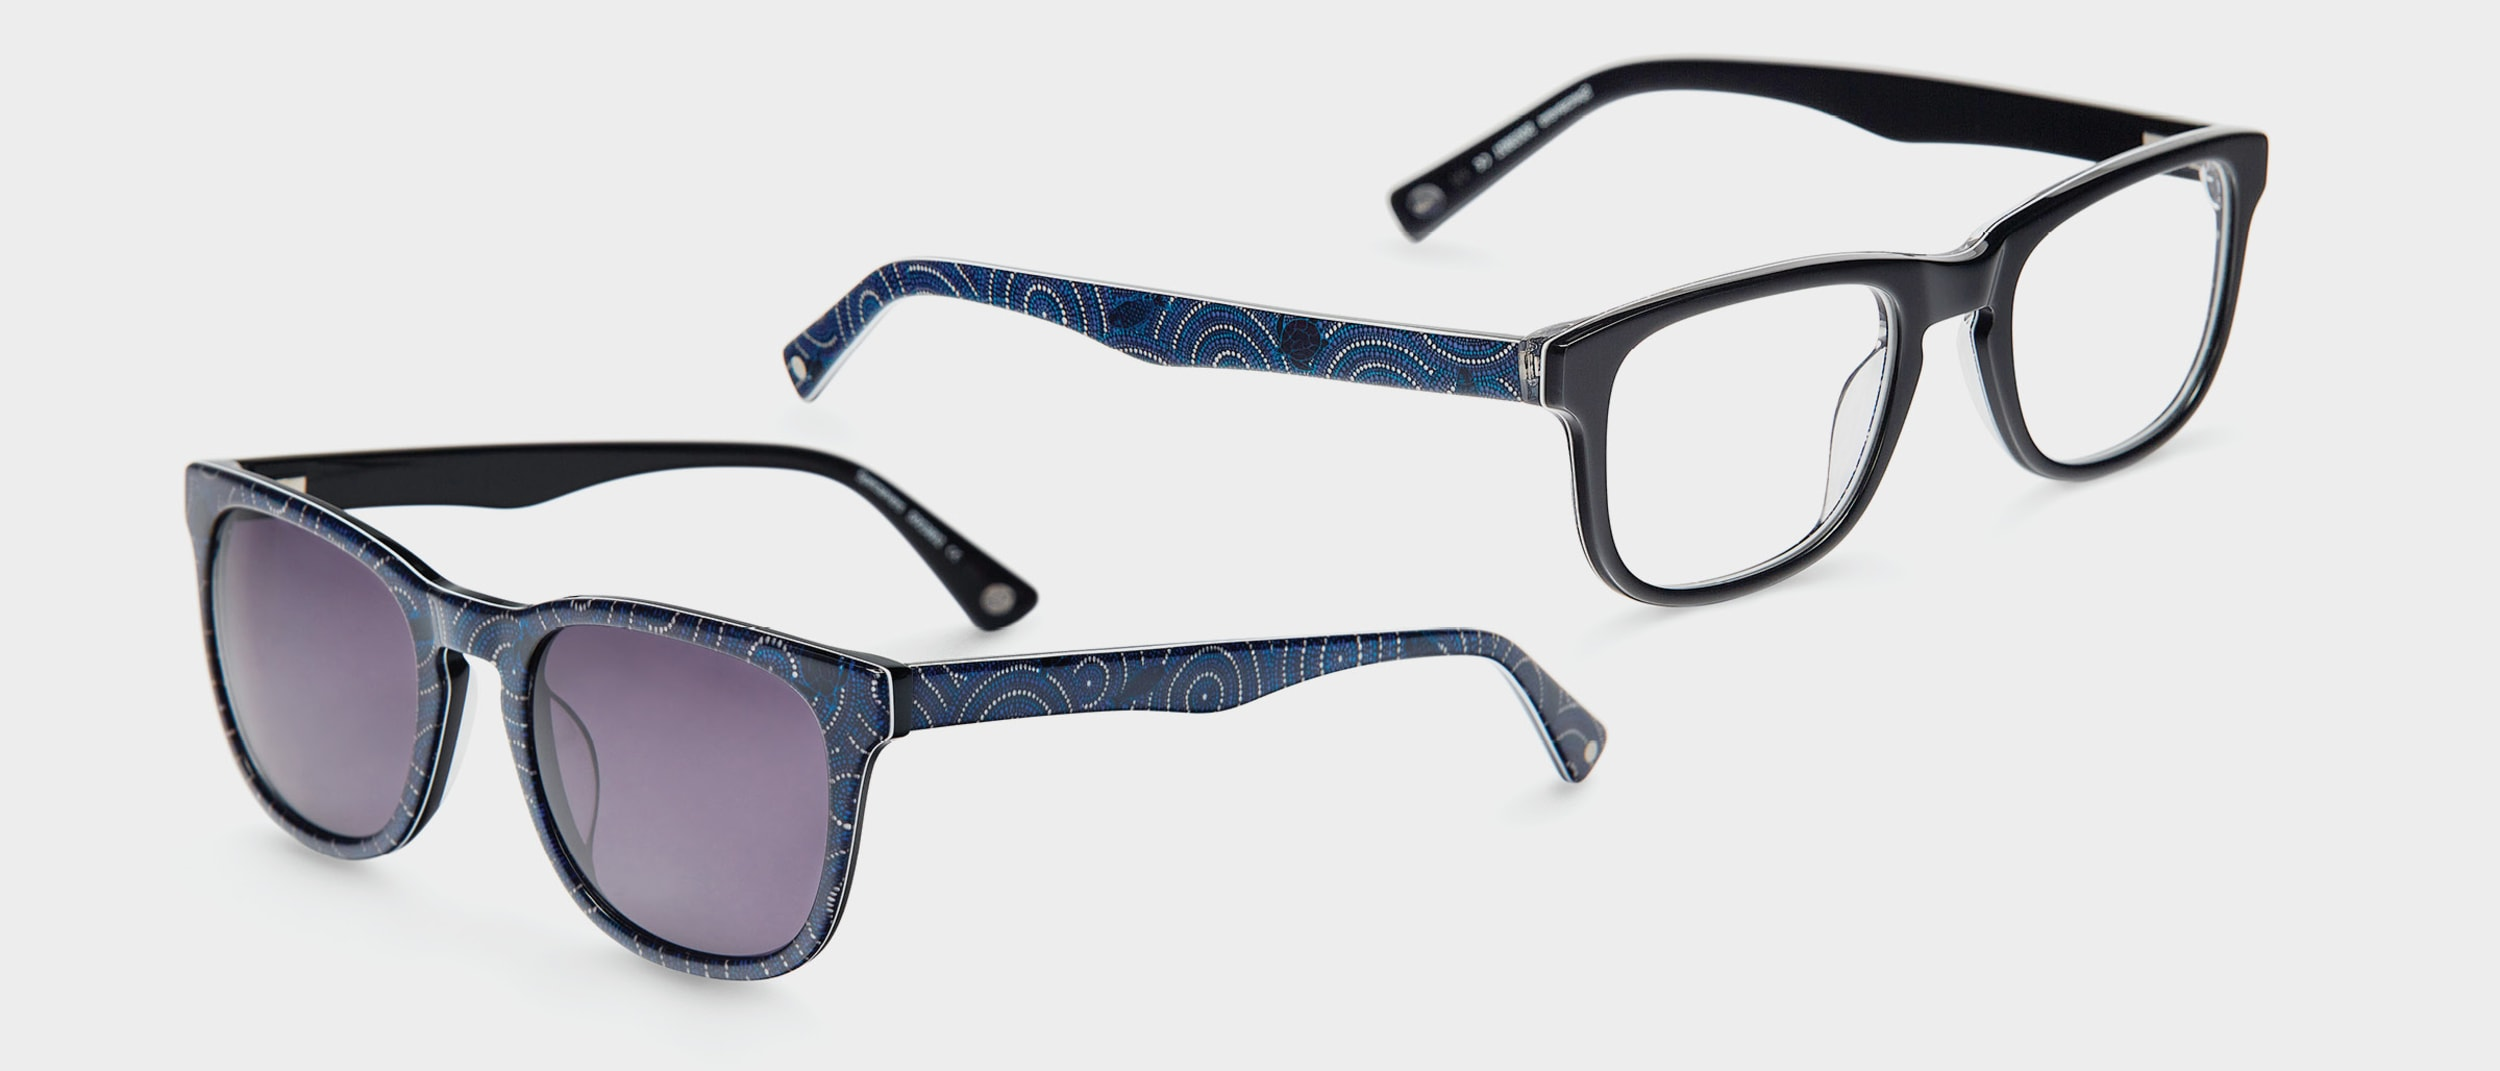 Specsavers: Launching limited edition Fred Hollows frames